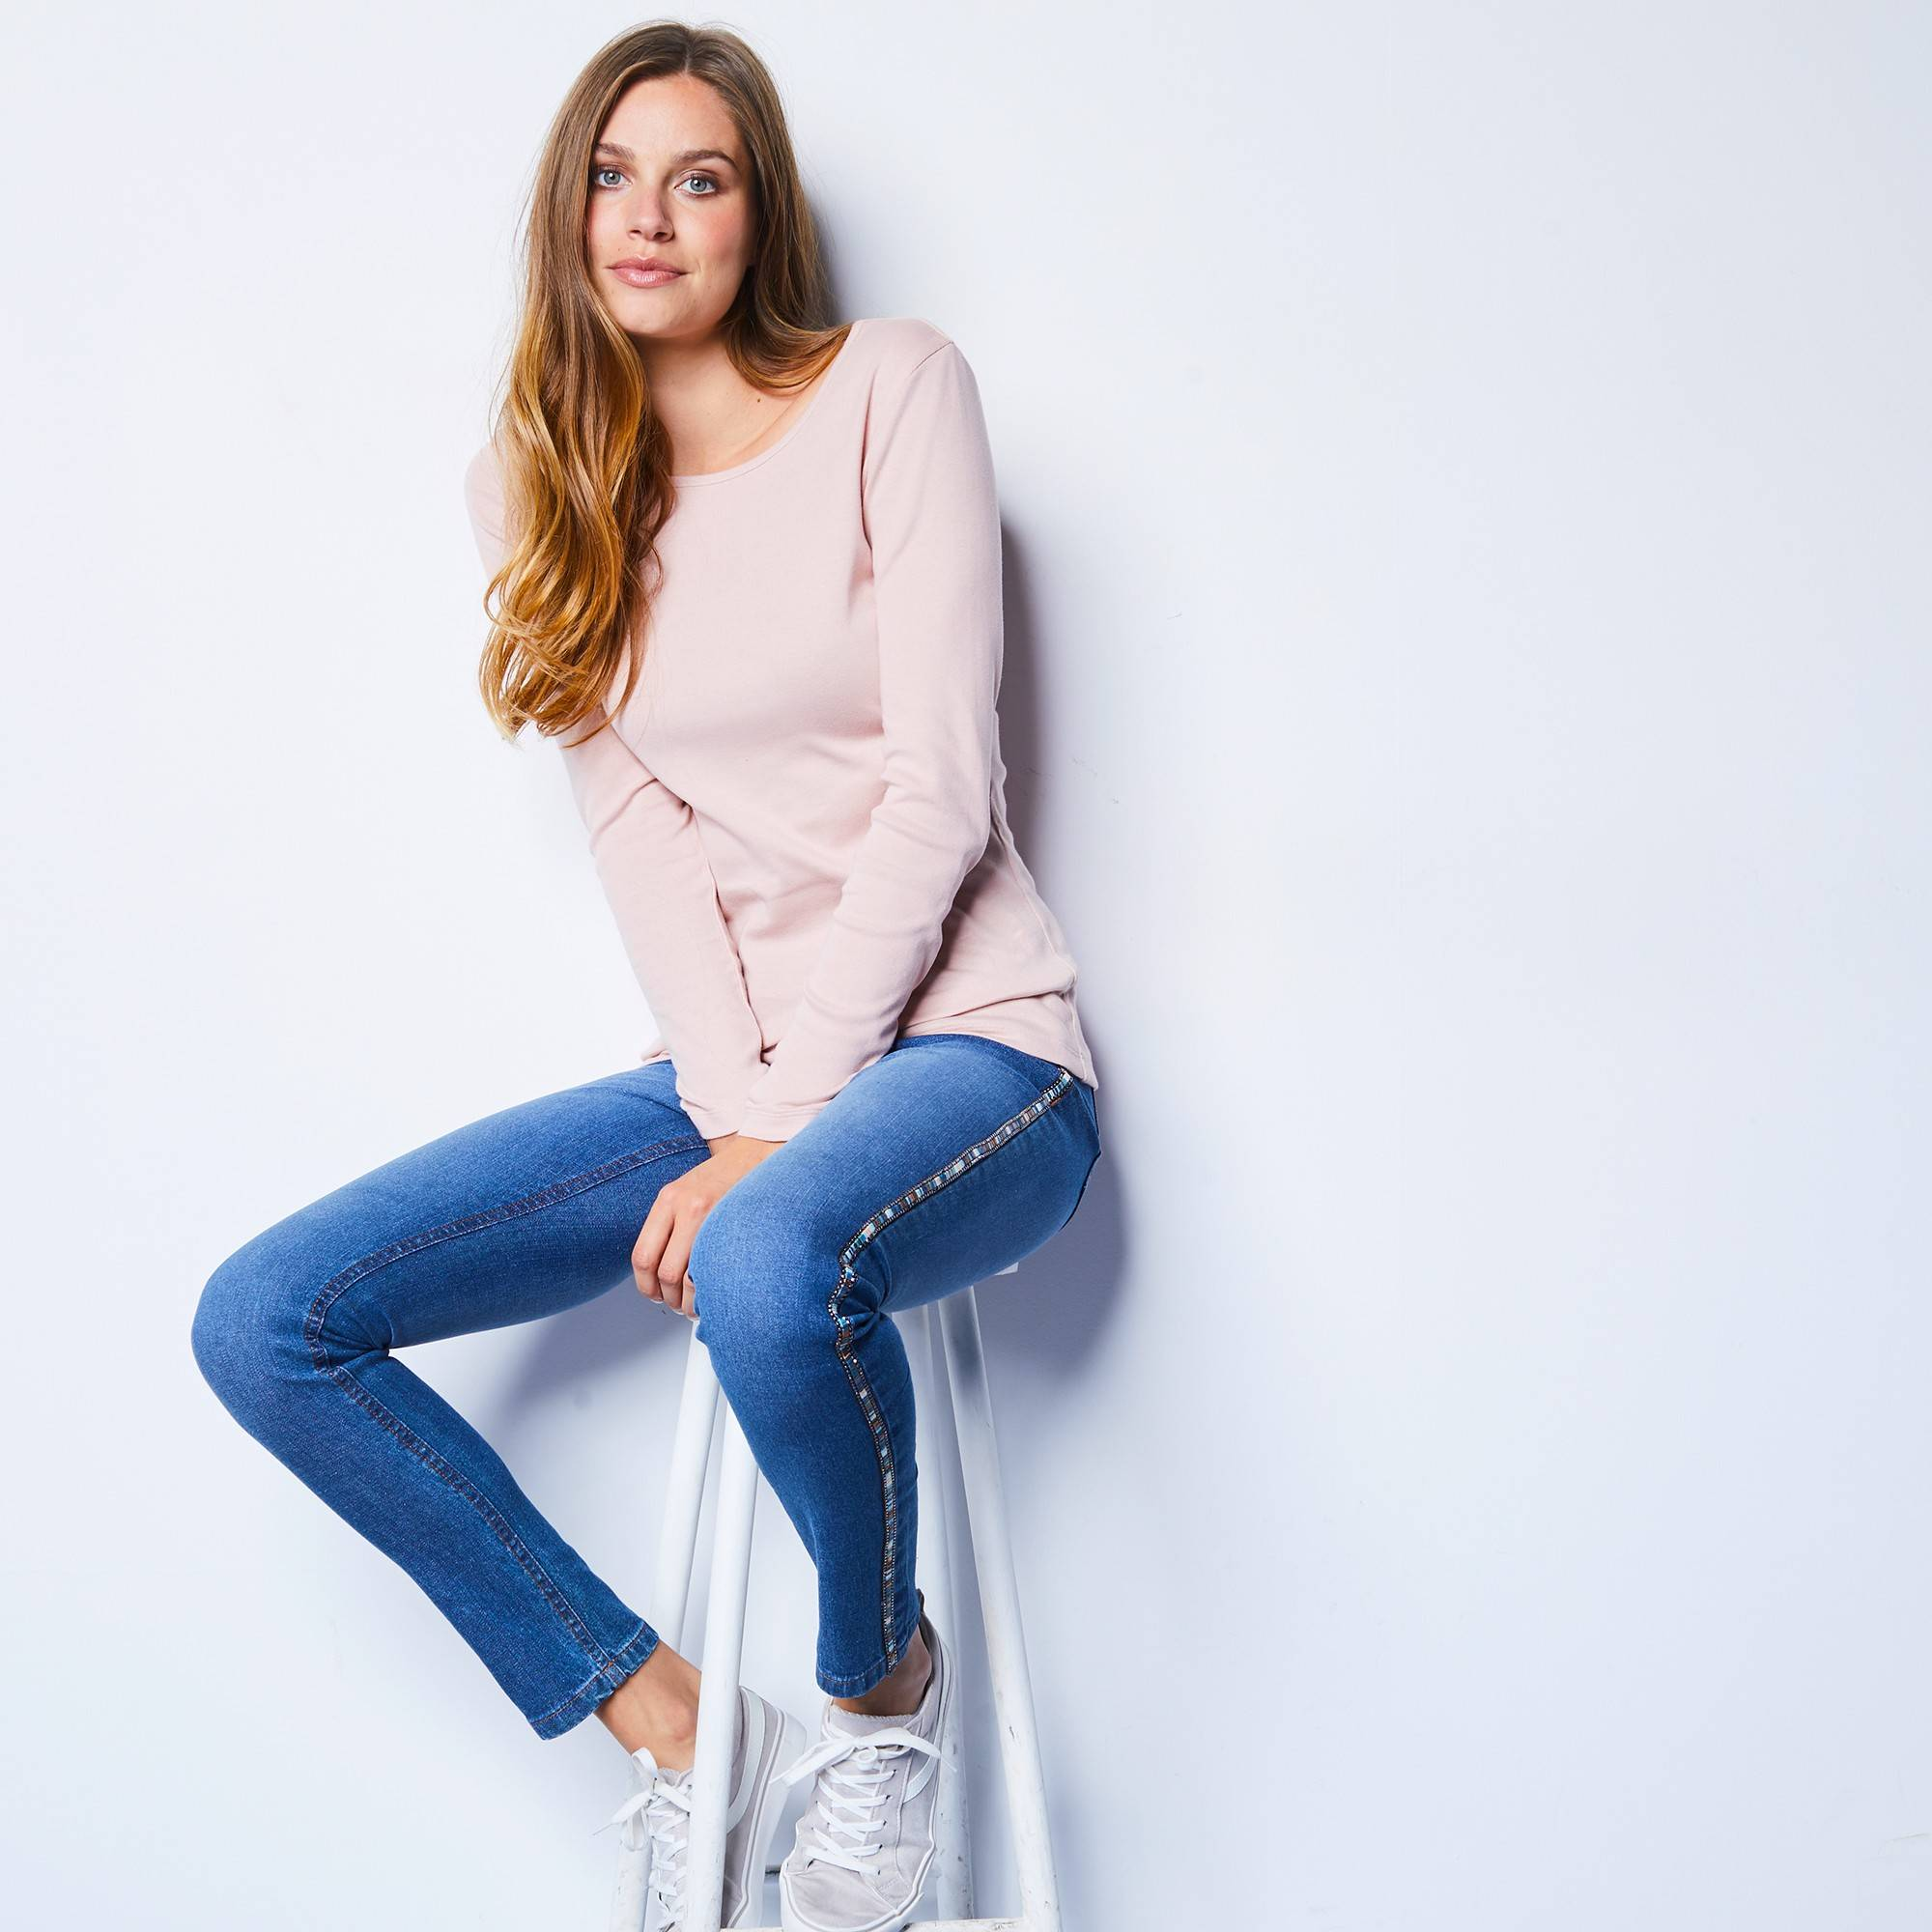 Tee-shirt manches longues - rose poudré - Rose - Taille : 54 - Blancheporte